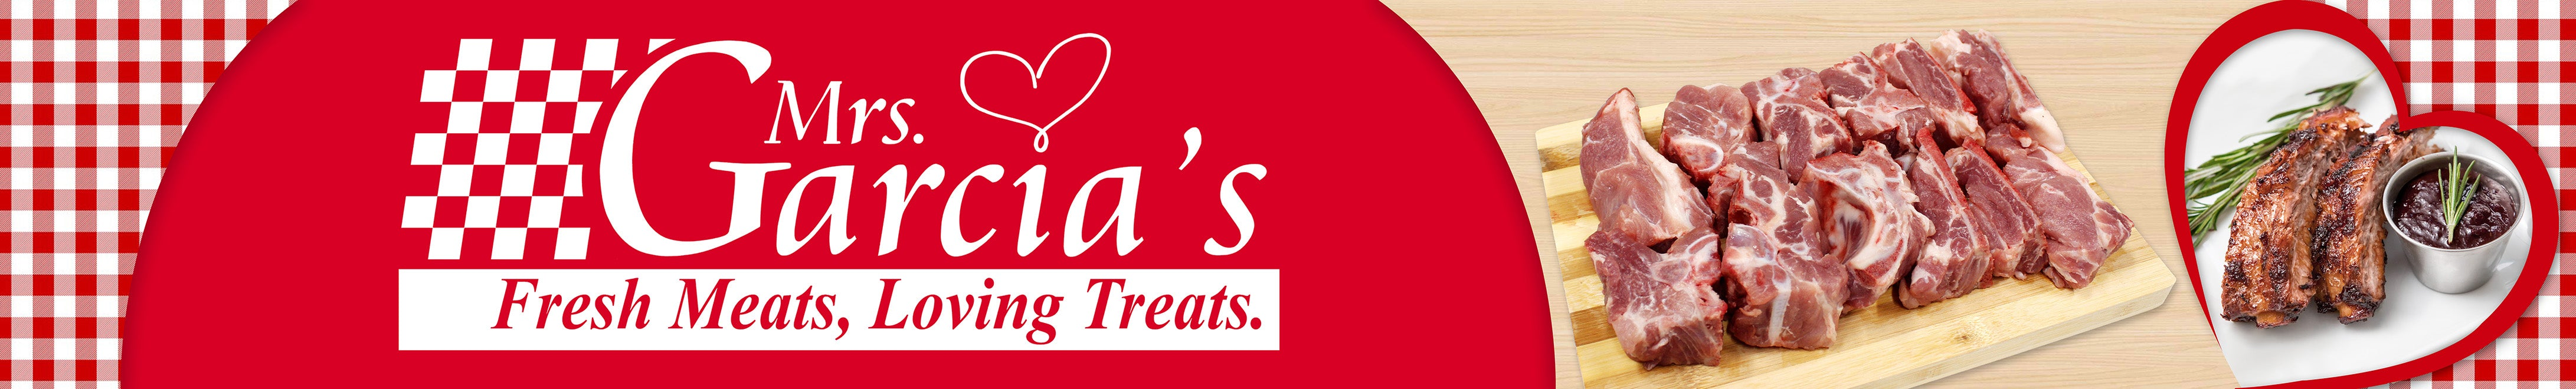 Mrs. Garcia's Meats | Buy Meats Online | Trusted for Over 25 Years